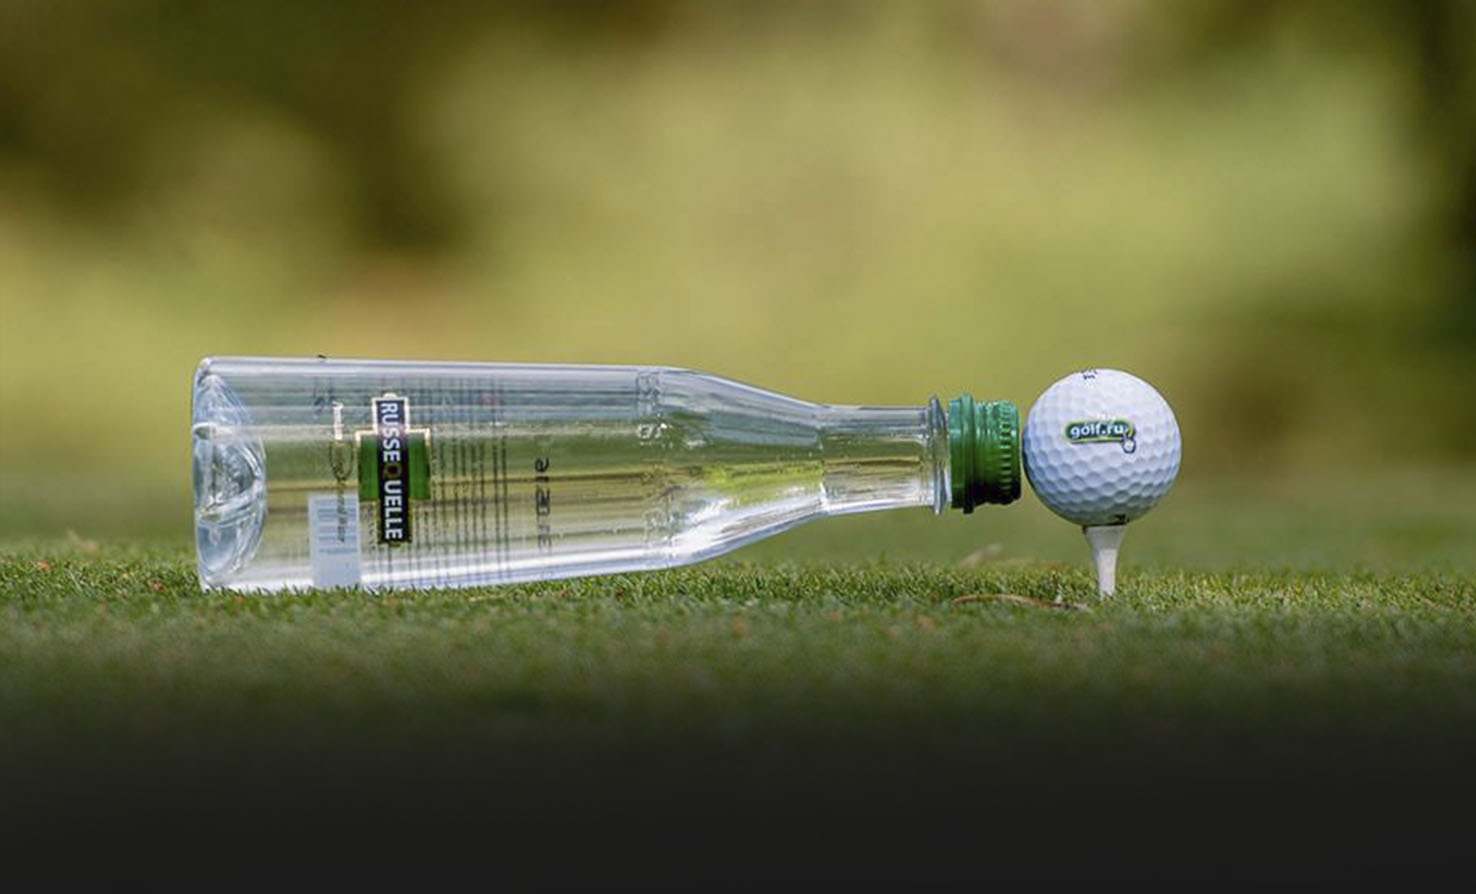 PLAY GOLF - DRINK RUSSEQUELLE